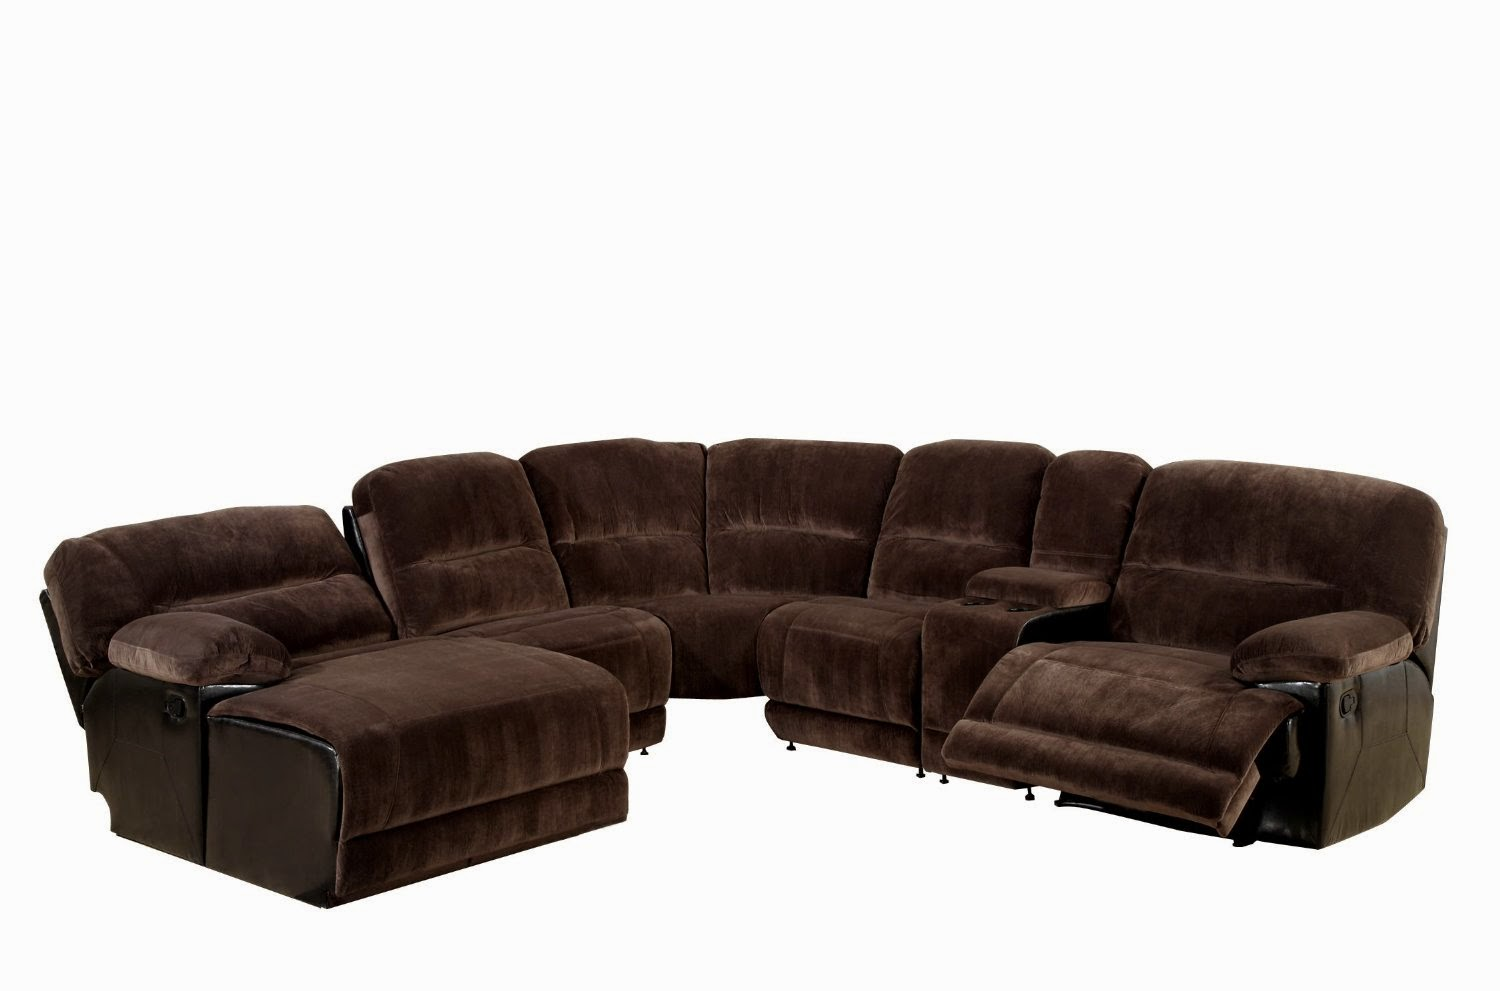 Reclining sofas for sale cheap saddle microfiber for Sectionals for sale